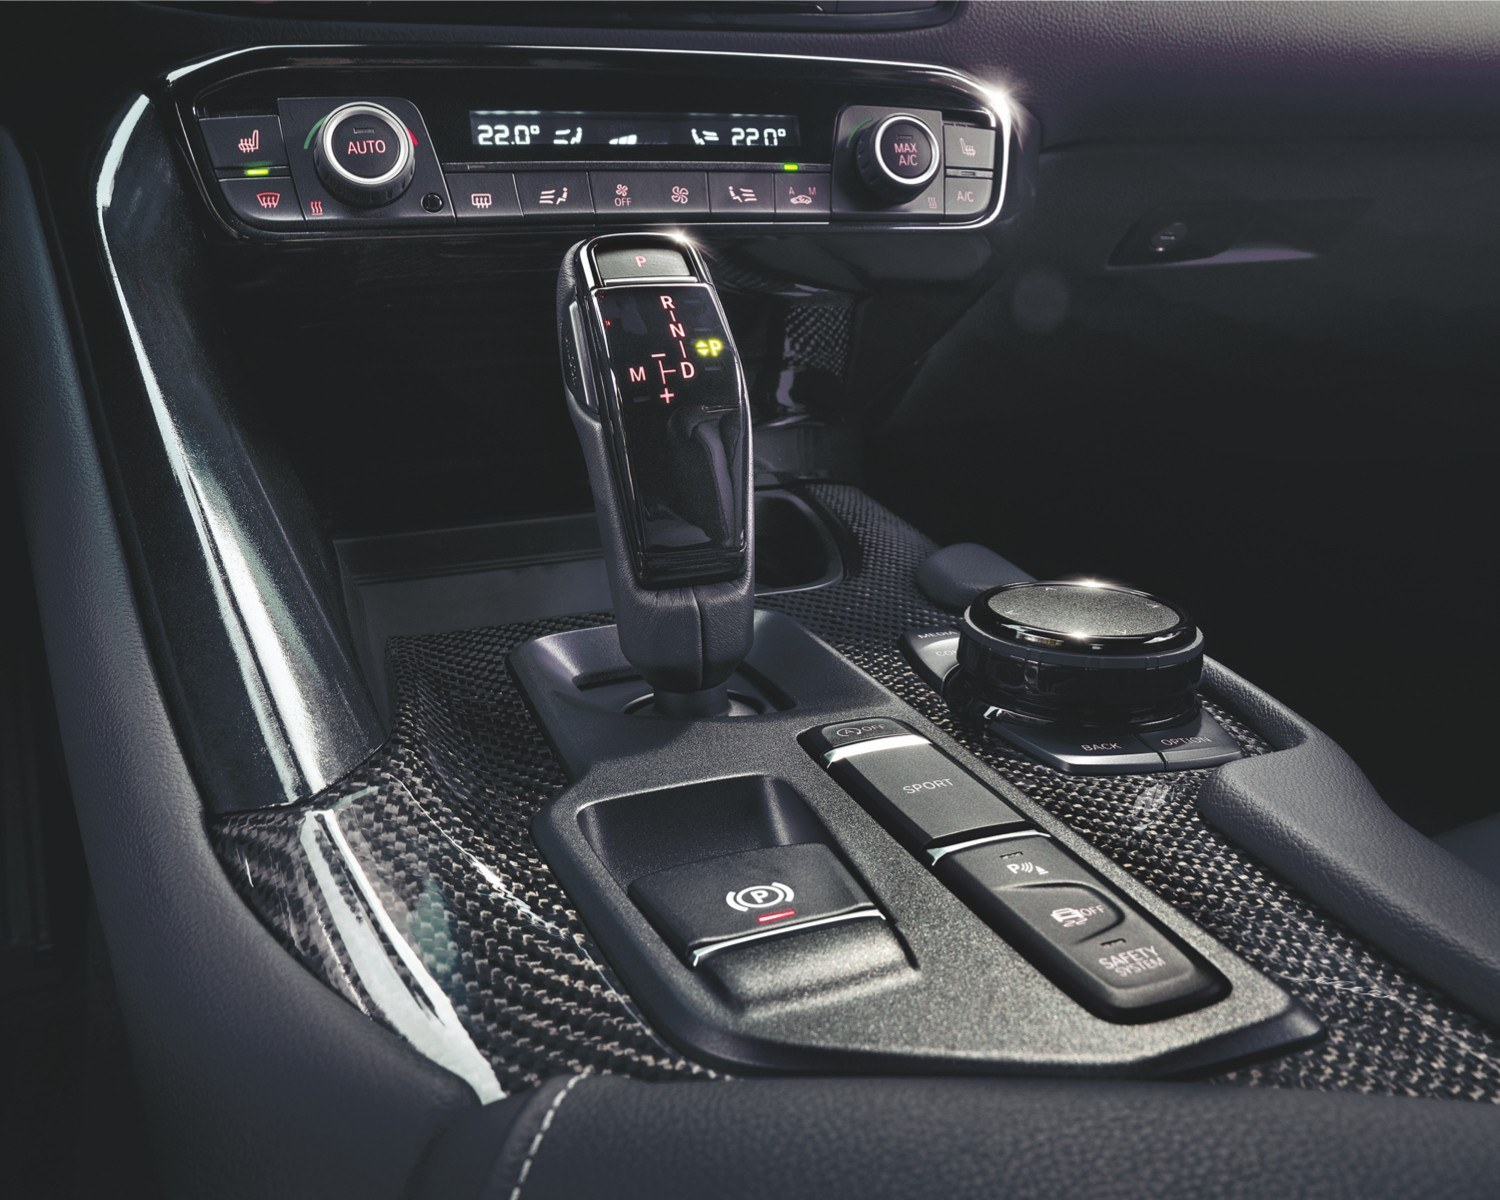 toyota-2020-supra-interior-gear-shift-console-gallery-08-l